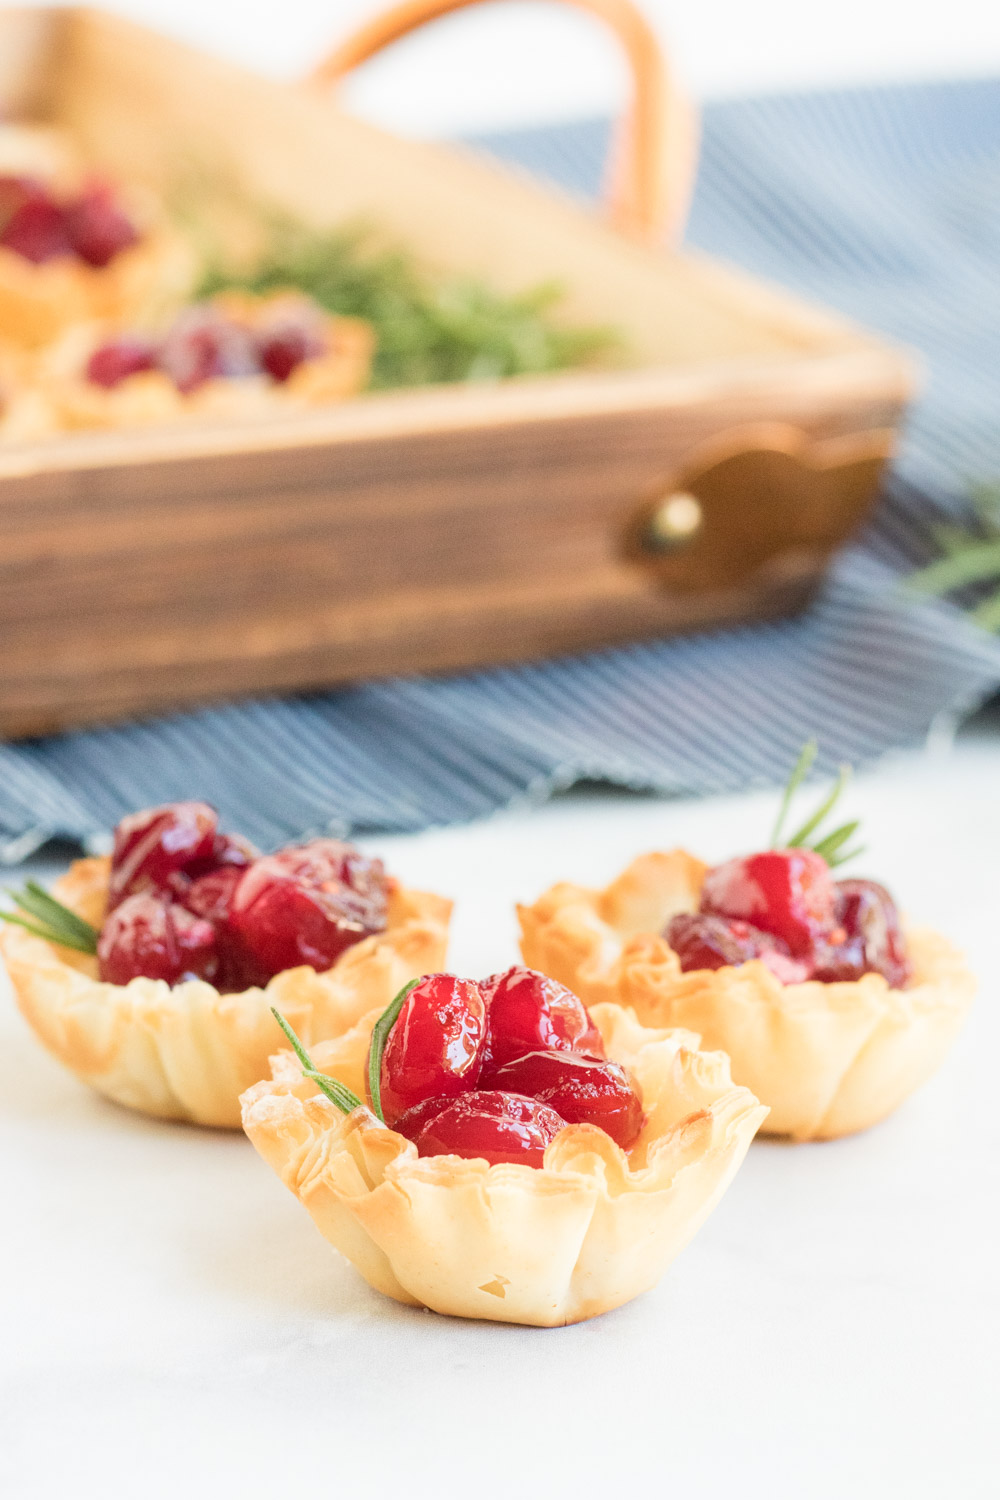 Cranberry Brie Bites- picture of a phyllo shell filled with brie cheese and cranberry and a sprig of rosemary